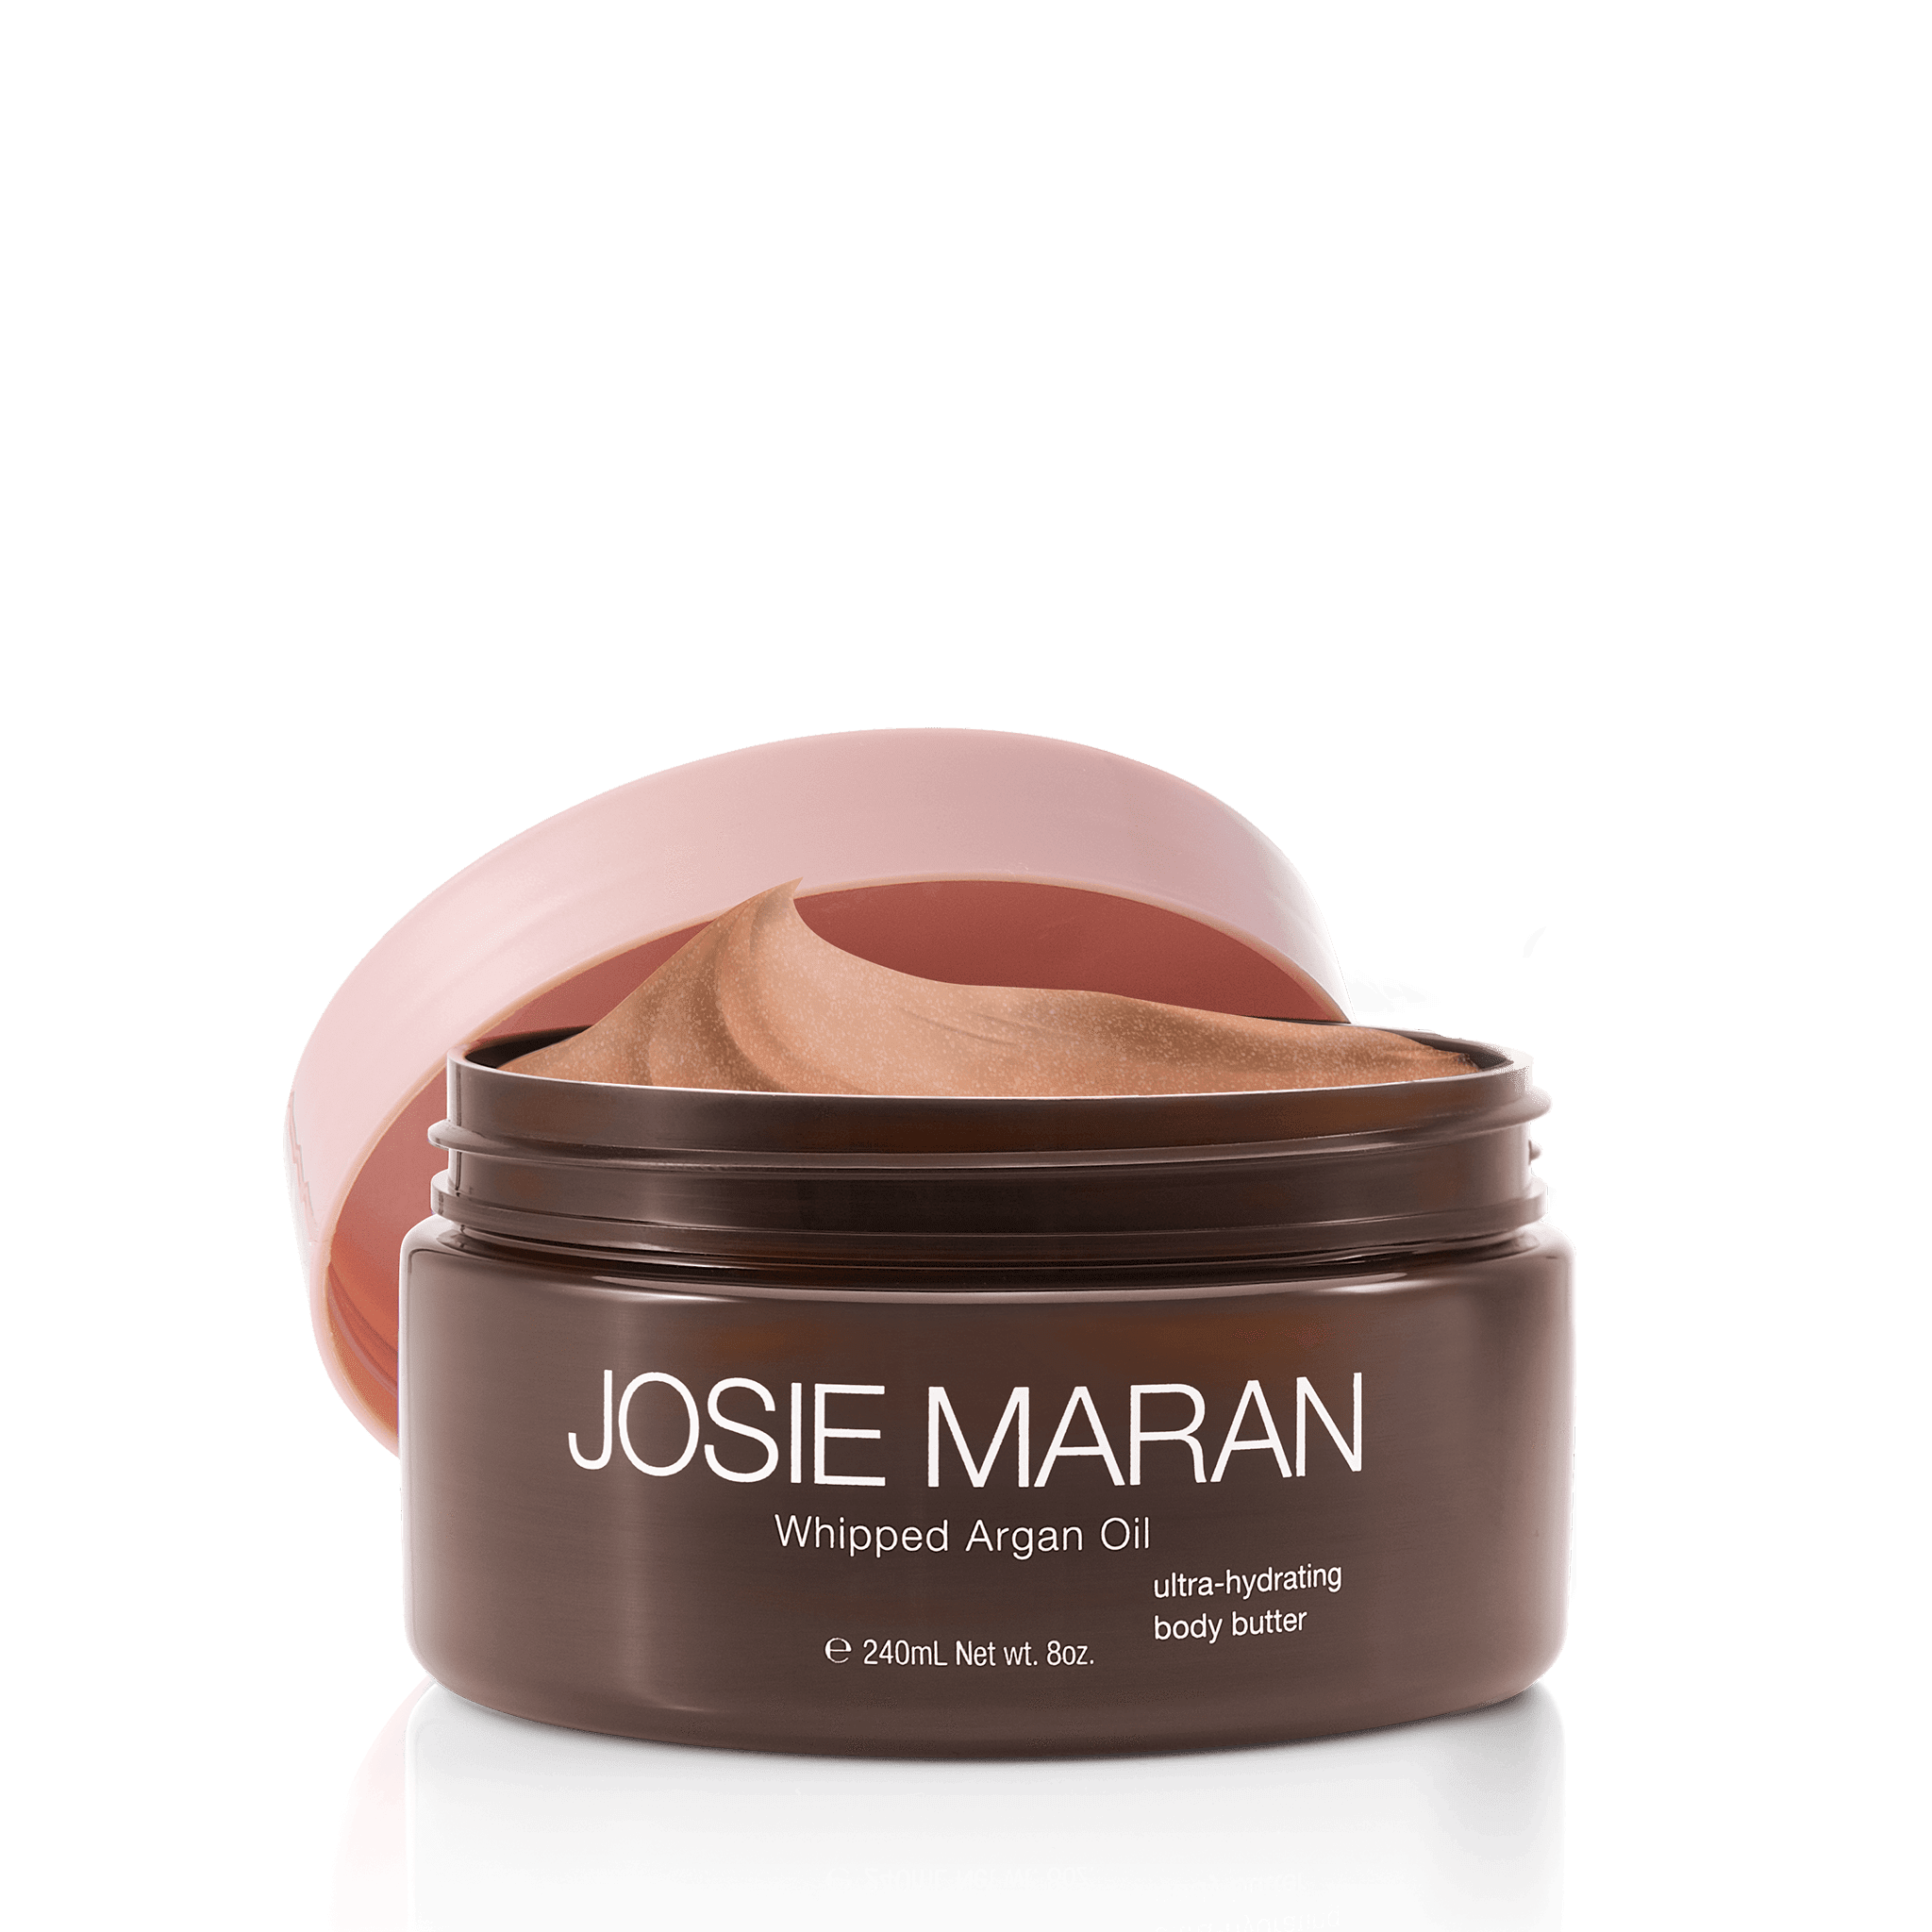 Whipped Argan Oil Illuminizing Body Butter